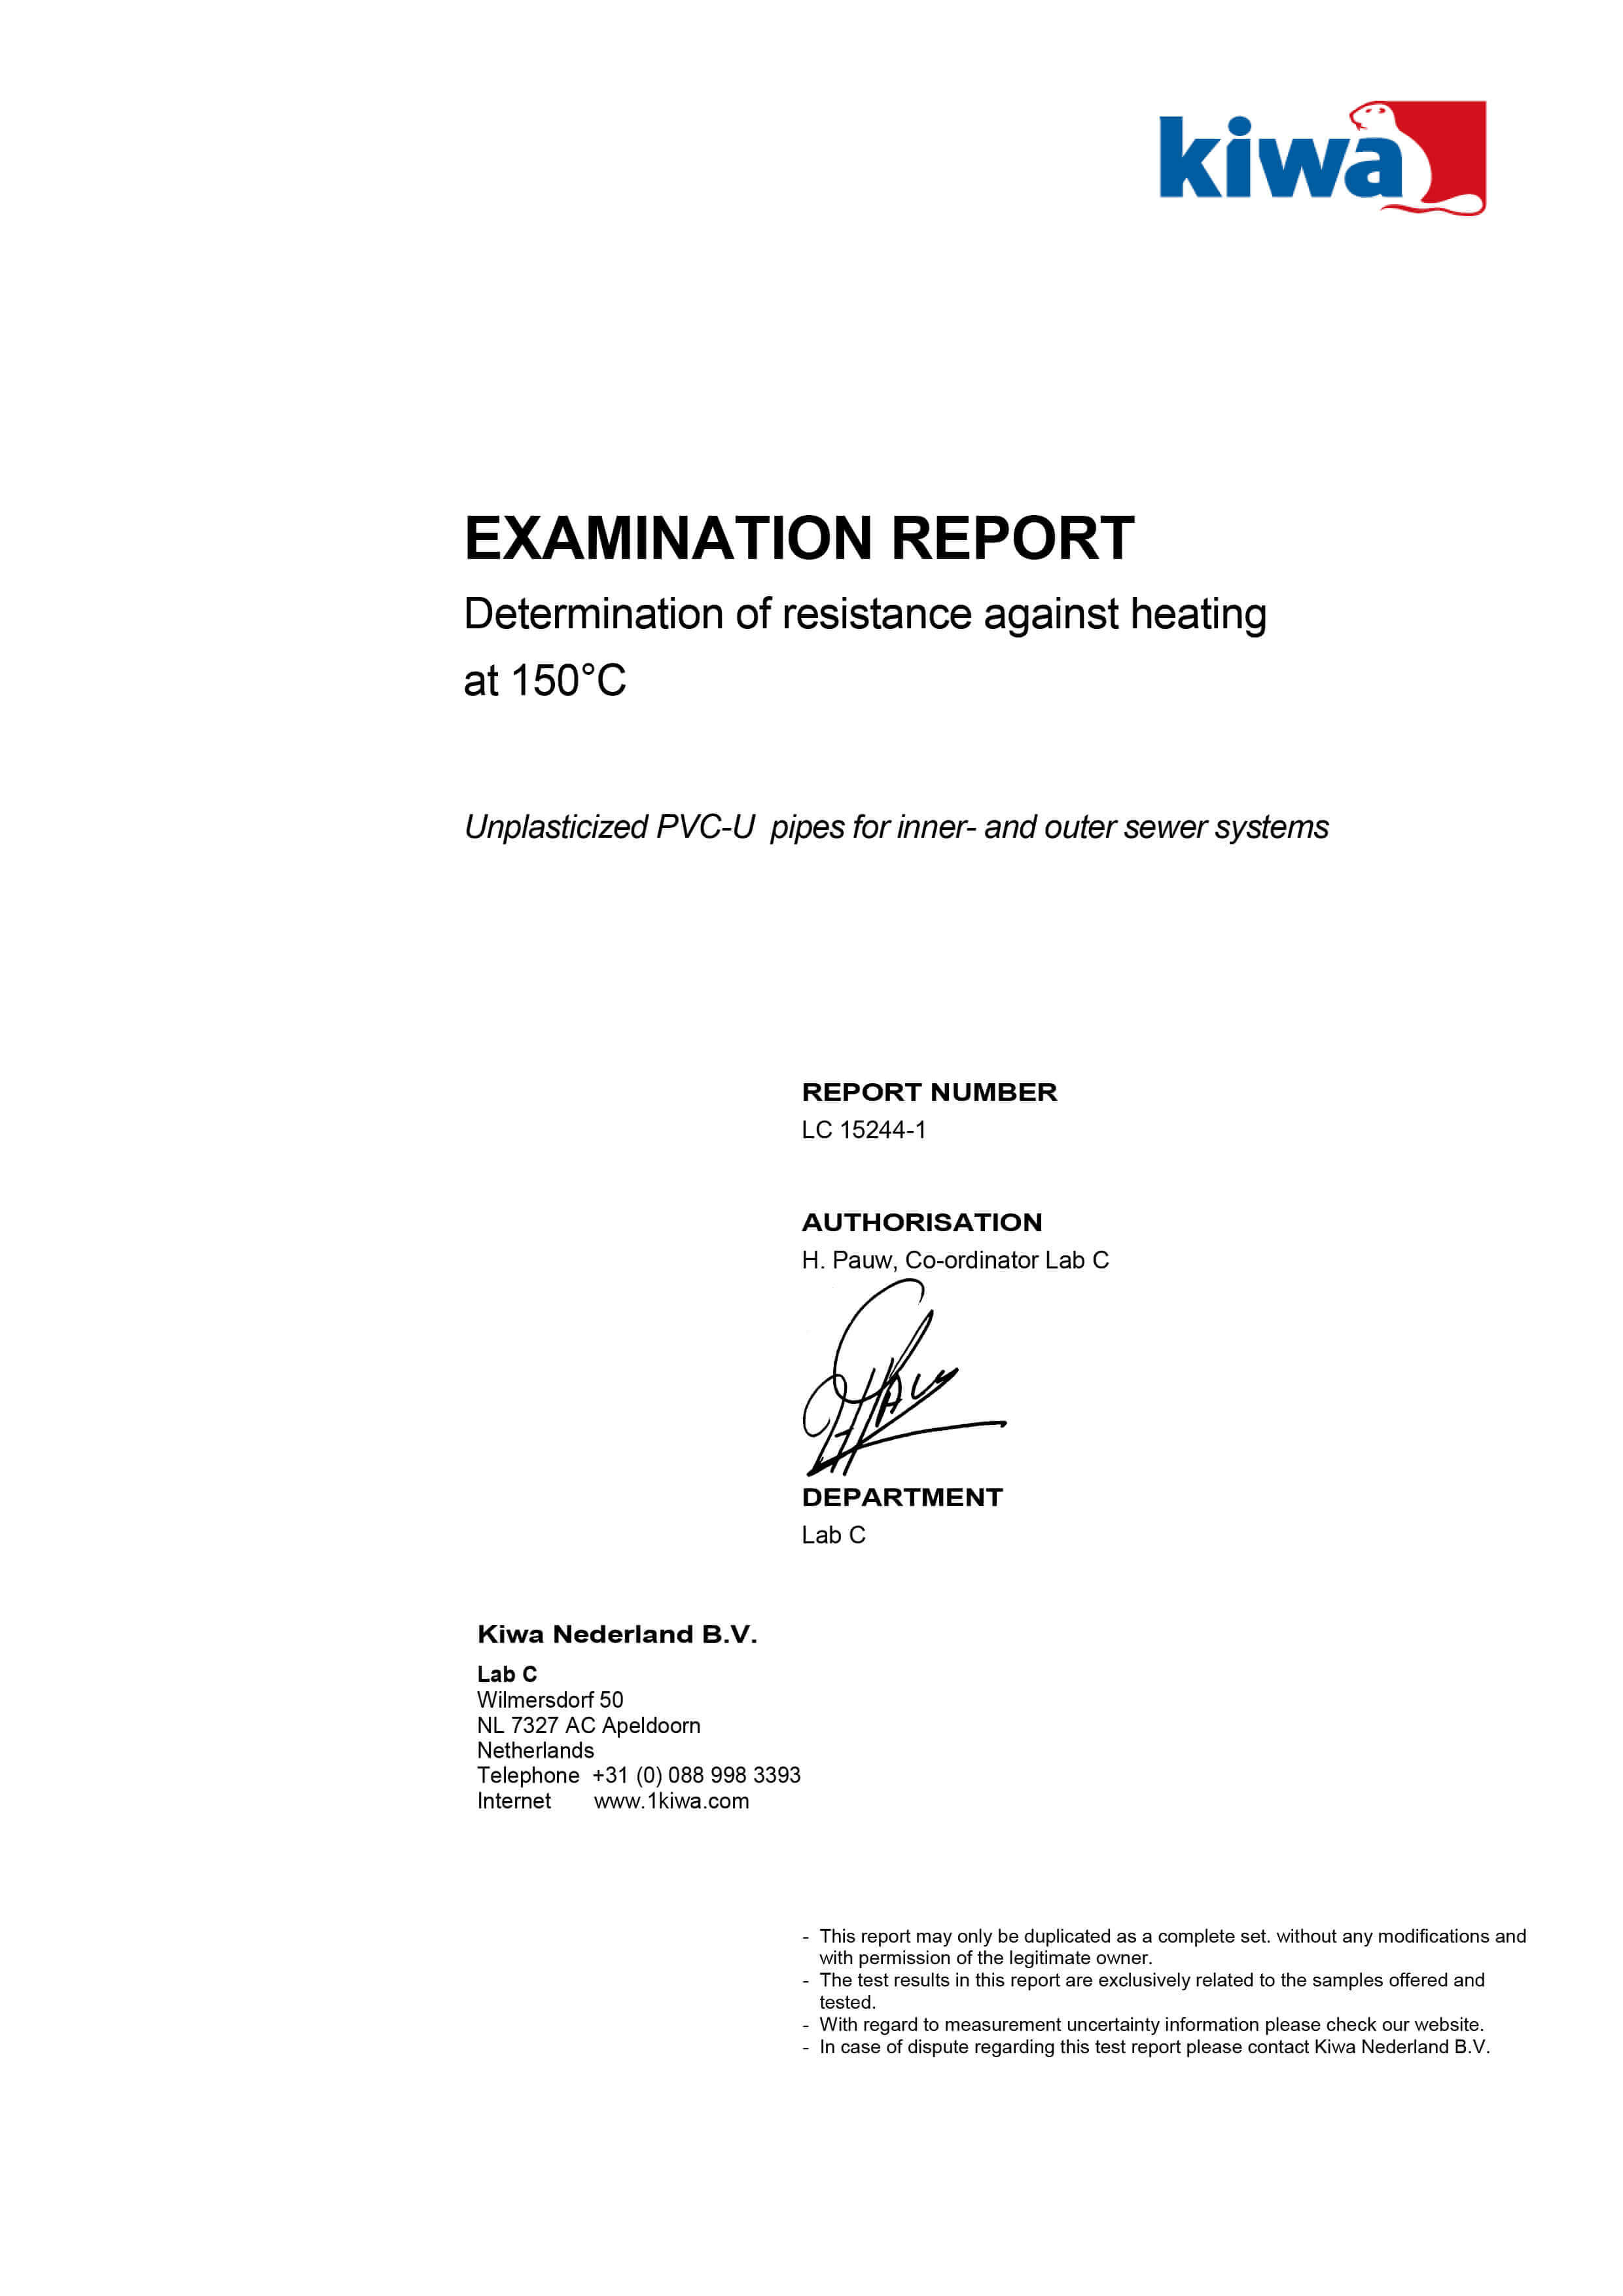 Haykal Plast Examination Report - Determination of resistance against heading at 150 degrees C - 1